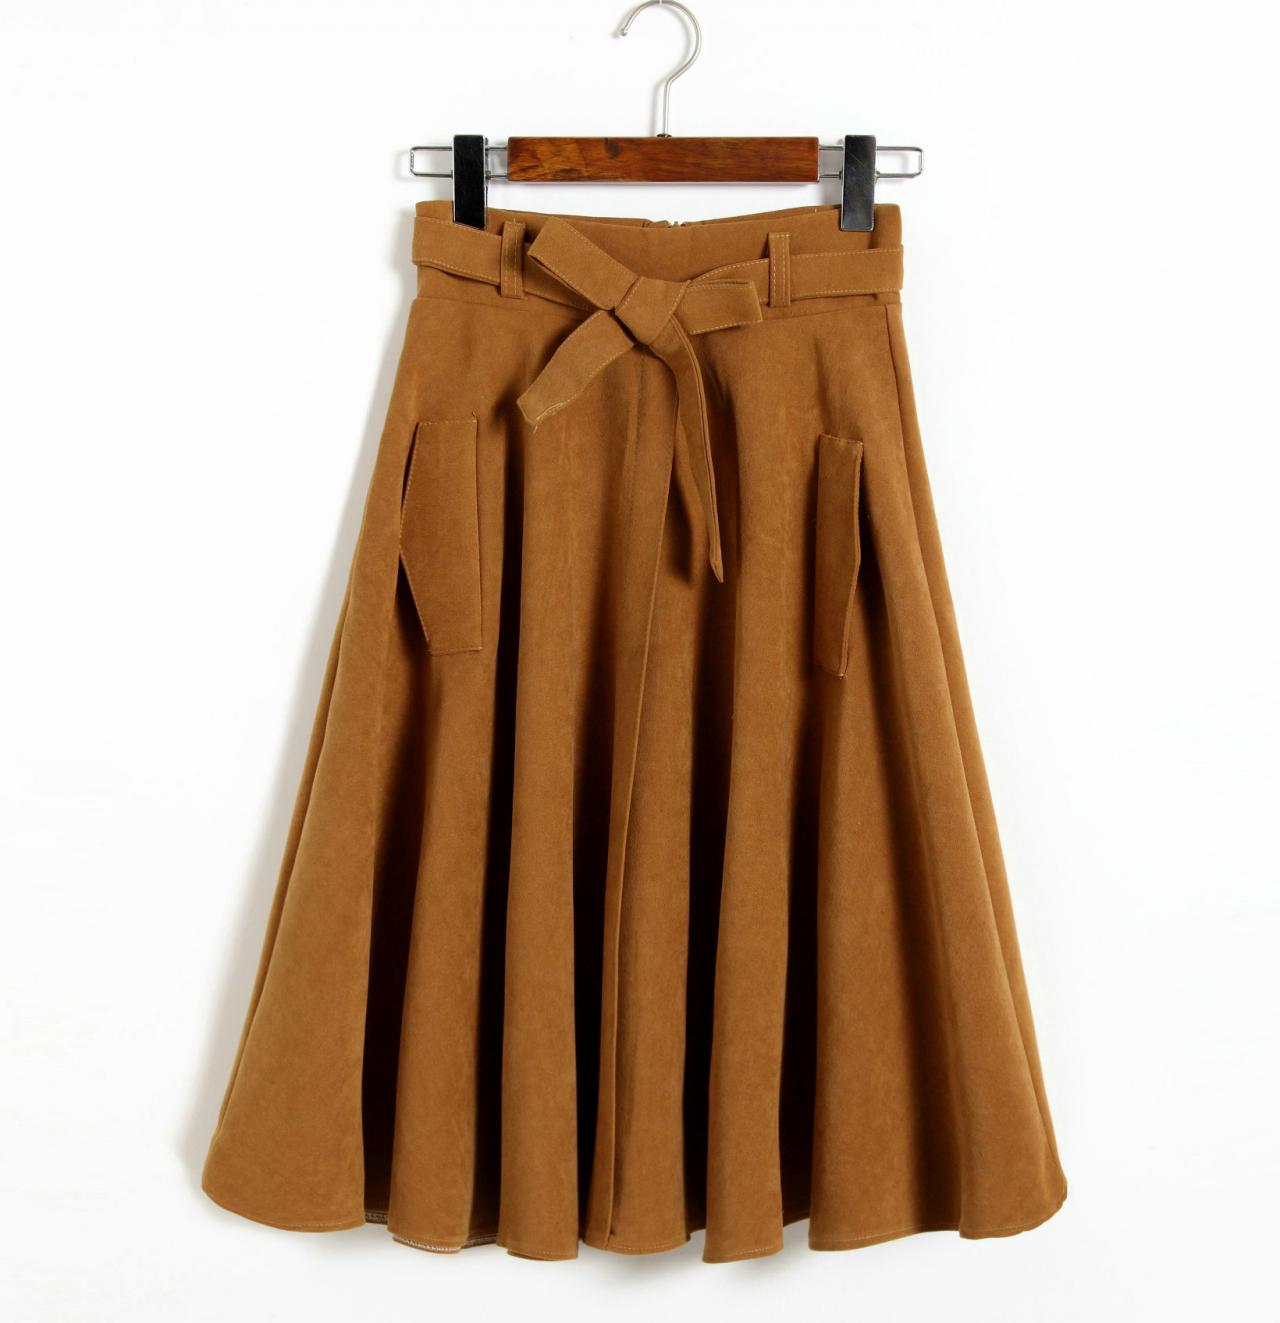 Khaki Faux Suede Bow Accent High Rise Knee Length Midi Skirt Featuring Pockets